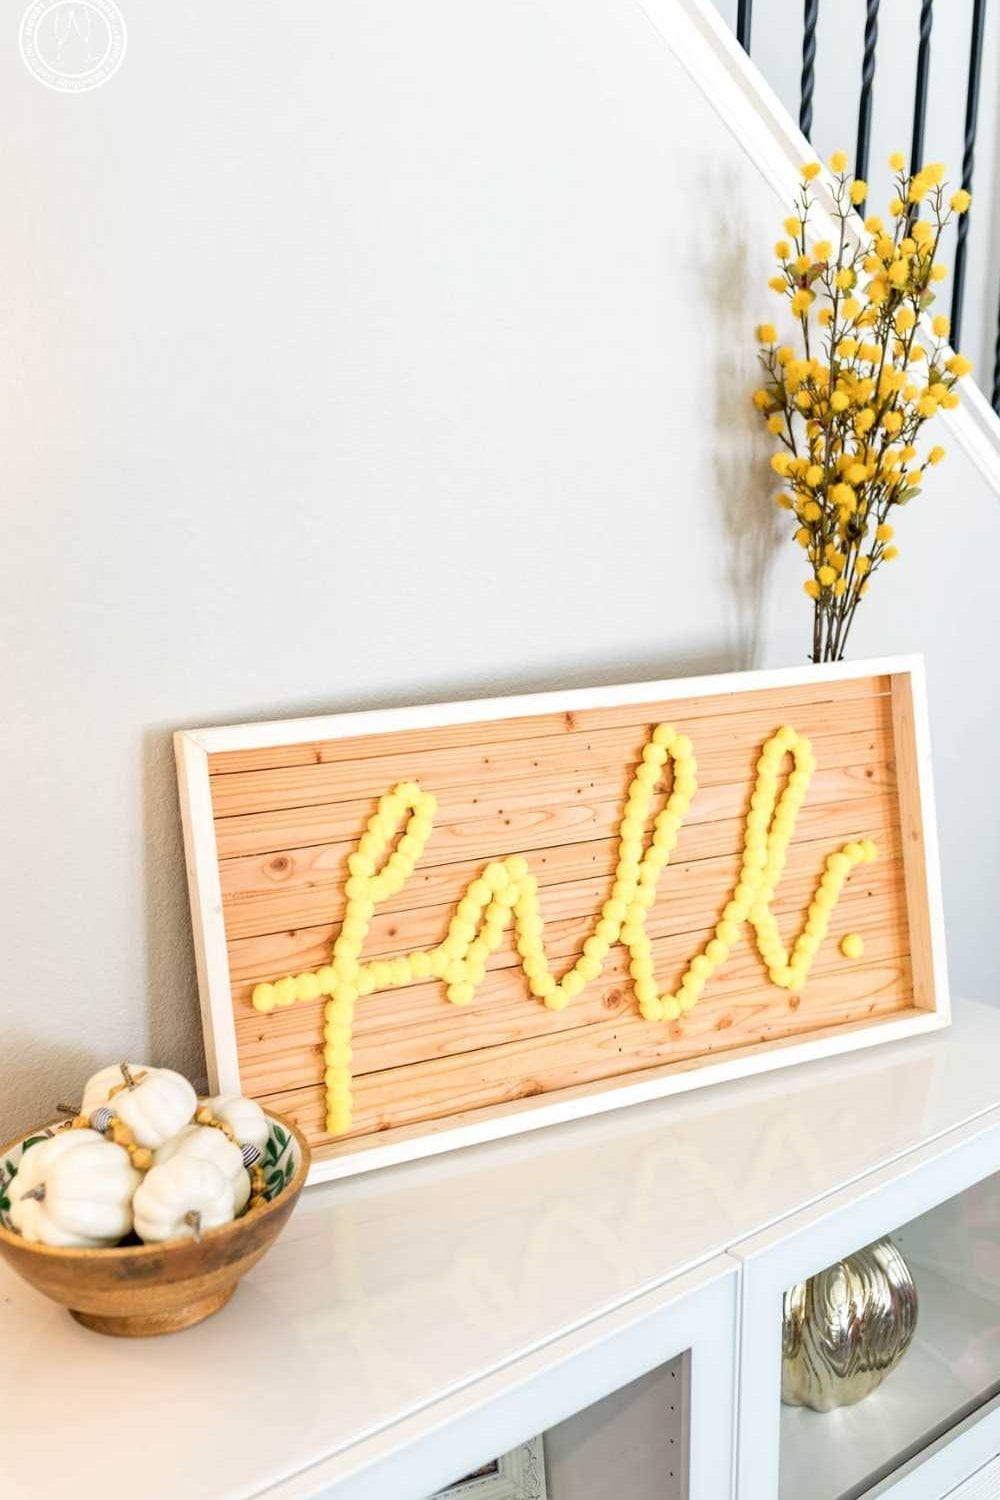 SO ADORABLE! fall sign wooden | fall sign pom pom | fall sign ideas | fall signs diy free printable | DIY Home decor ideas | Never Skip Brunch by Cara Newhart | #decor #diy #fall #neverskipbrunch